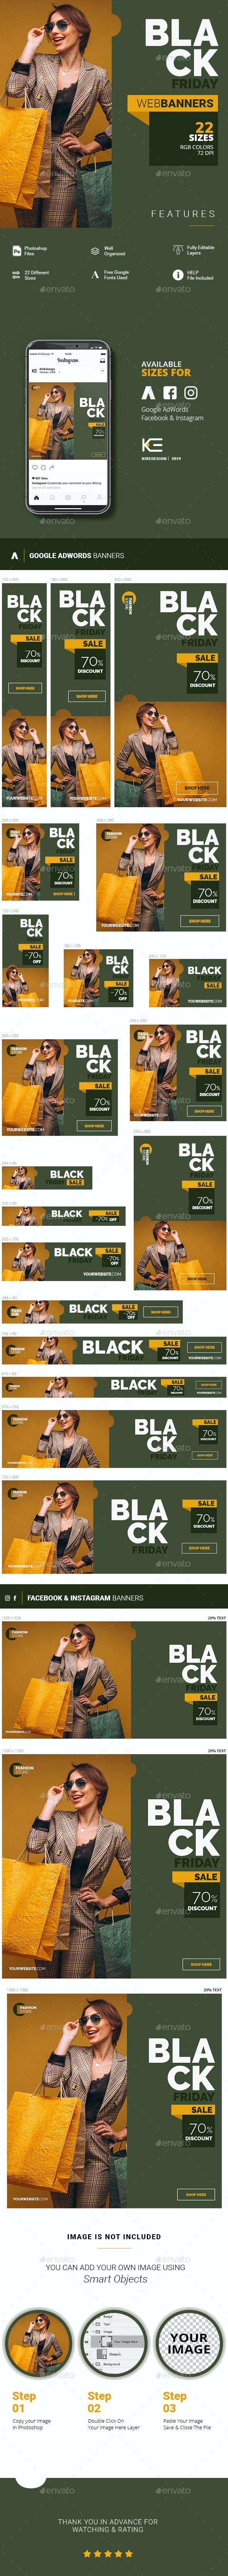 Black Friday Web Banners - Banners & Ads Web Elements